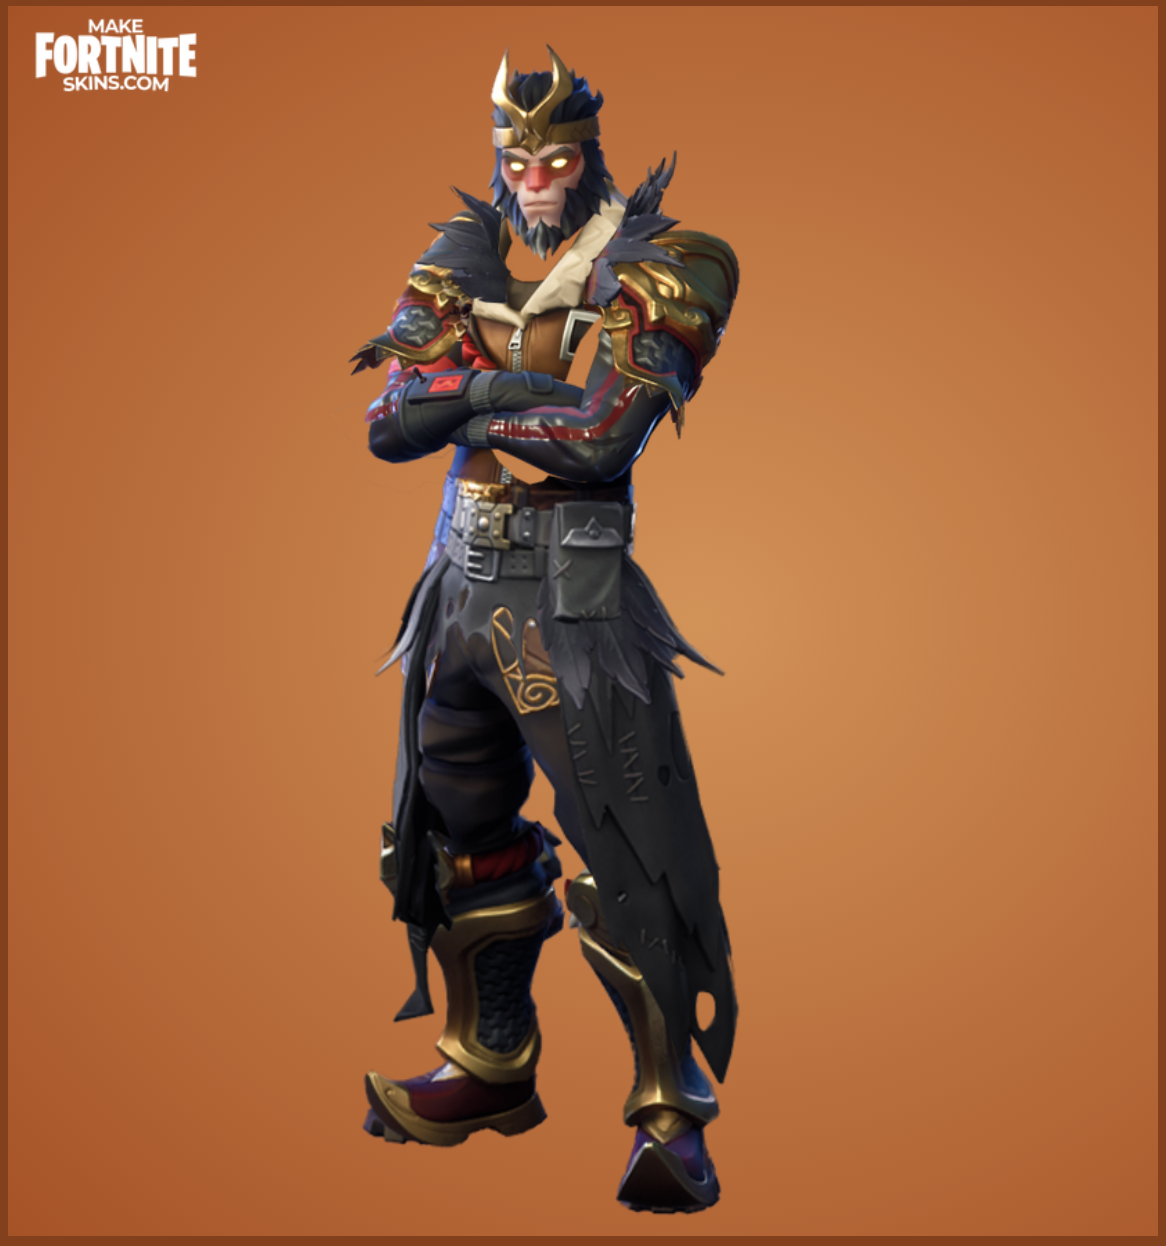 Fortnite Skin Creator How To Make Your Own For Fun Inverse